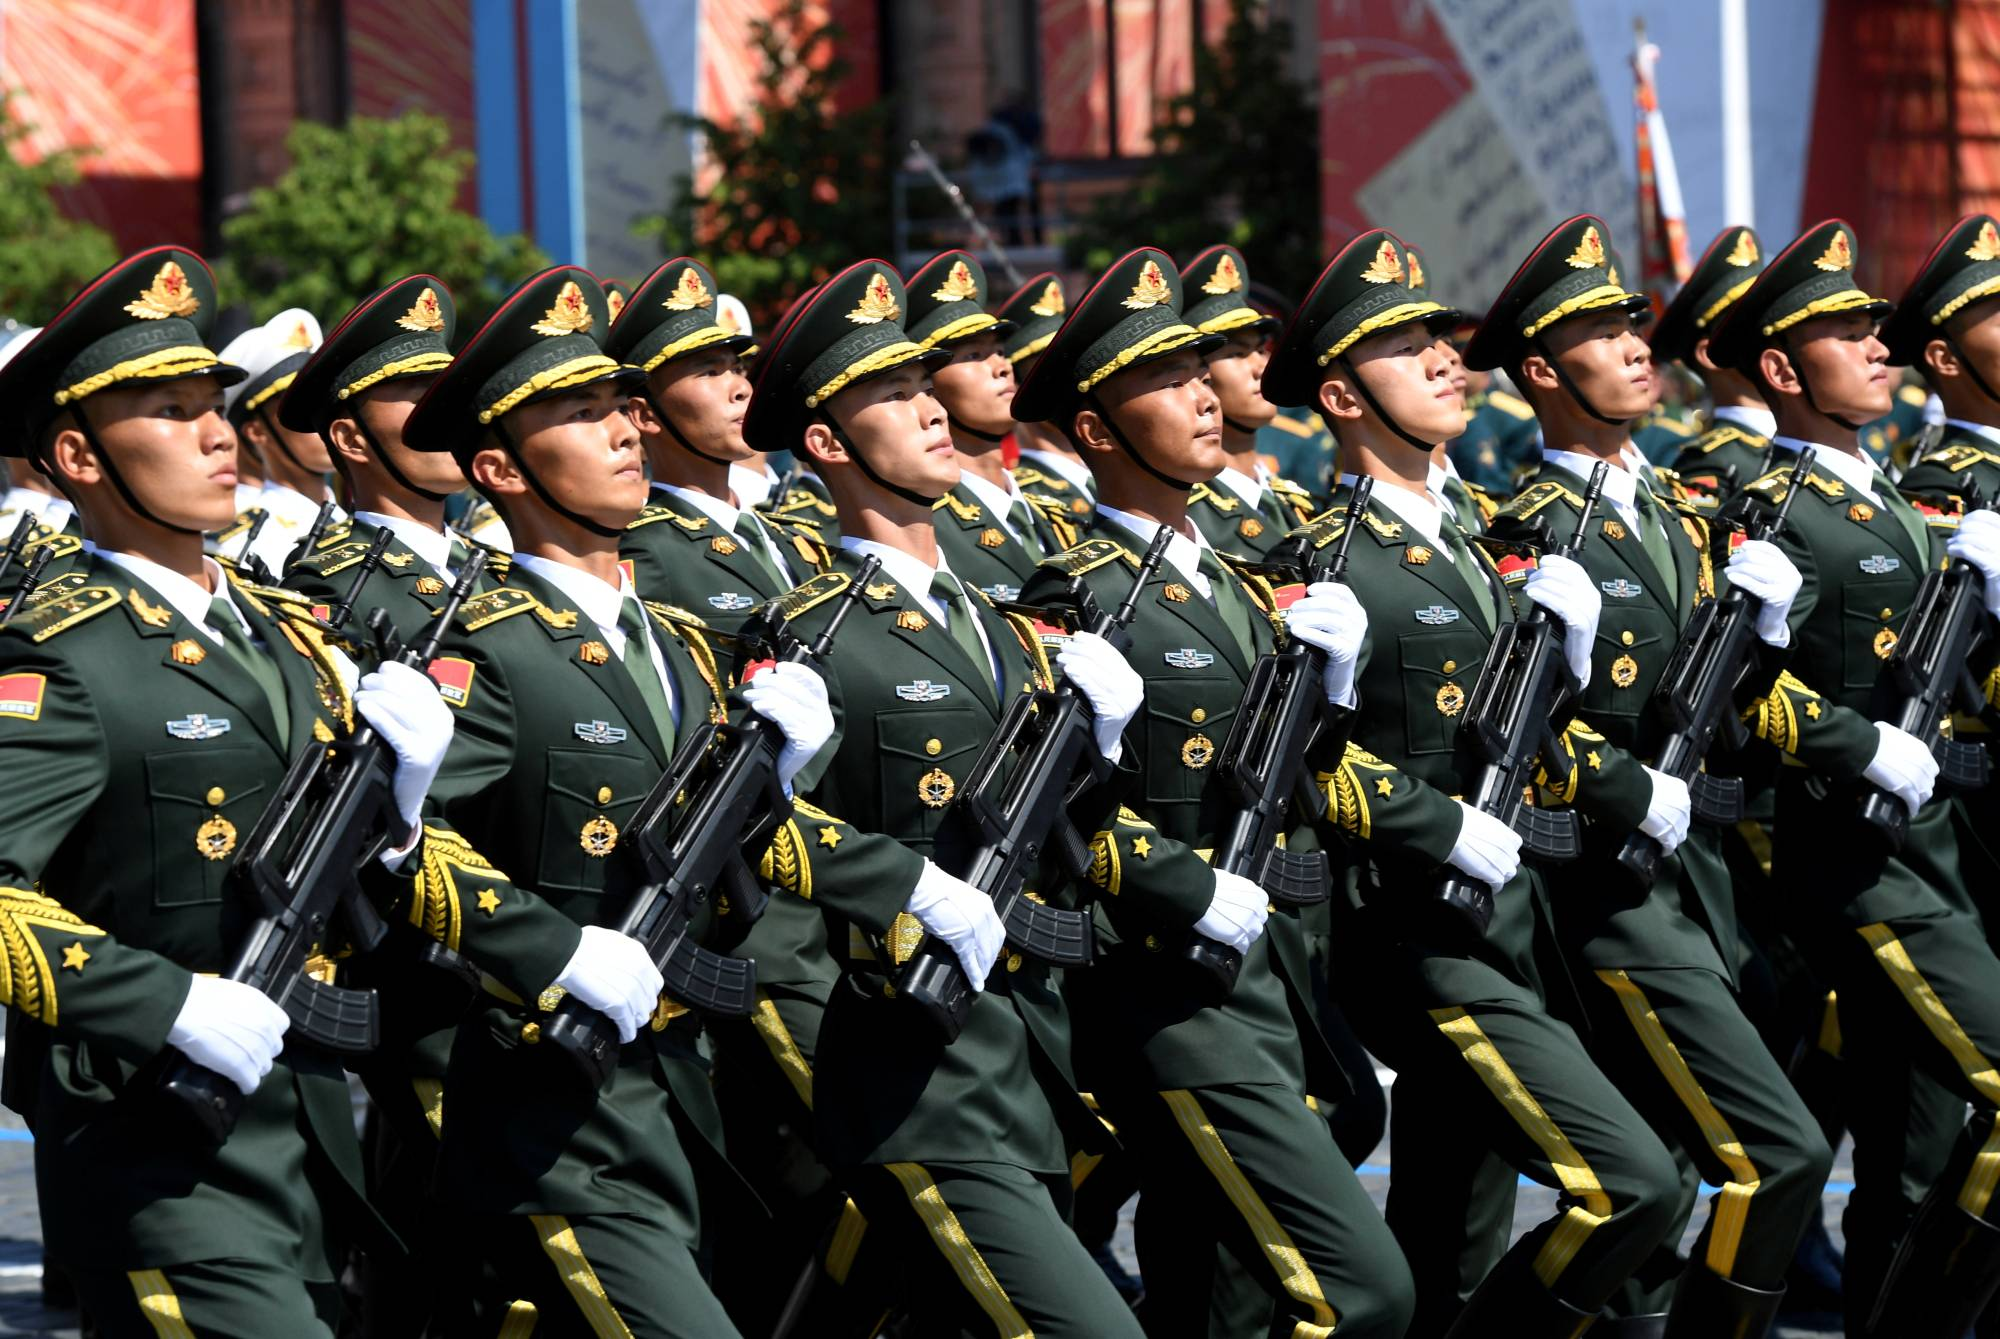 Chinese People's Liberation Army soldiers march during a Parade in Moscow's Red Square in June. | SERGEY PYATAKOV / VIA REUTERS